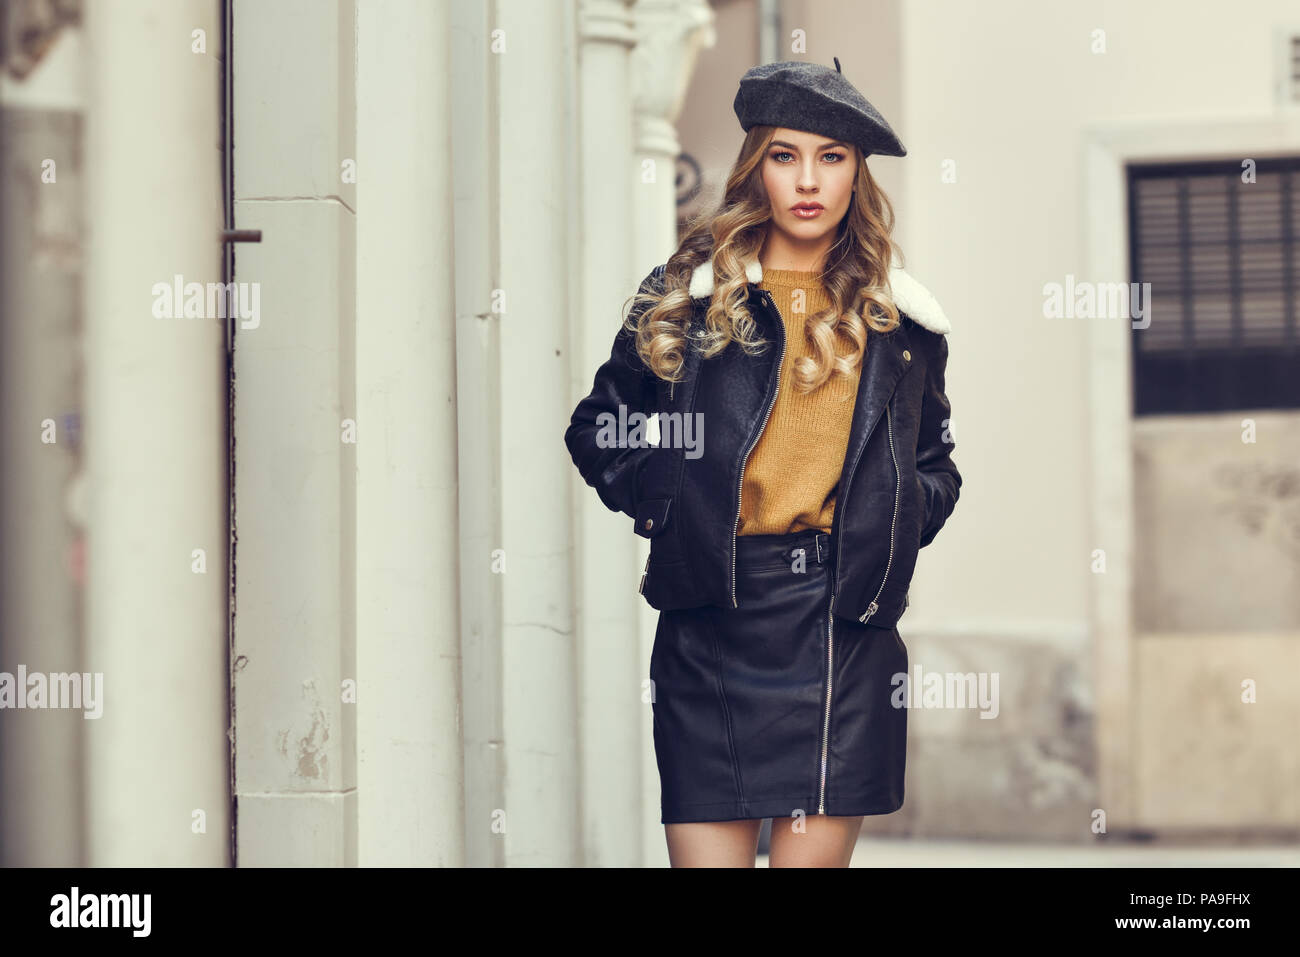 bf40420fe7b25 Girl In Leather Jacket And Skirt Imágenes De Stock   Girl In Leather ...